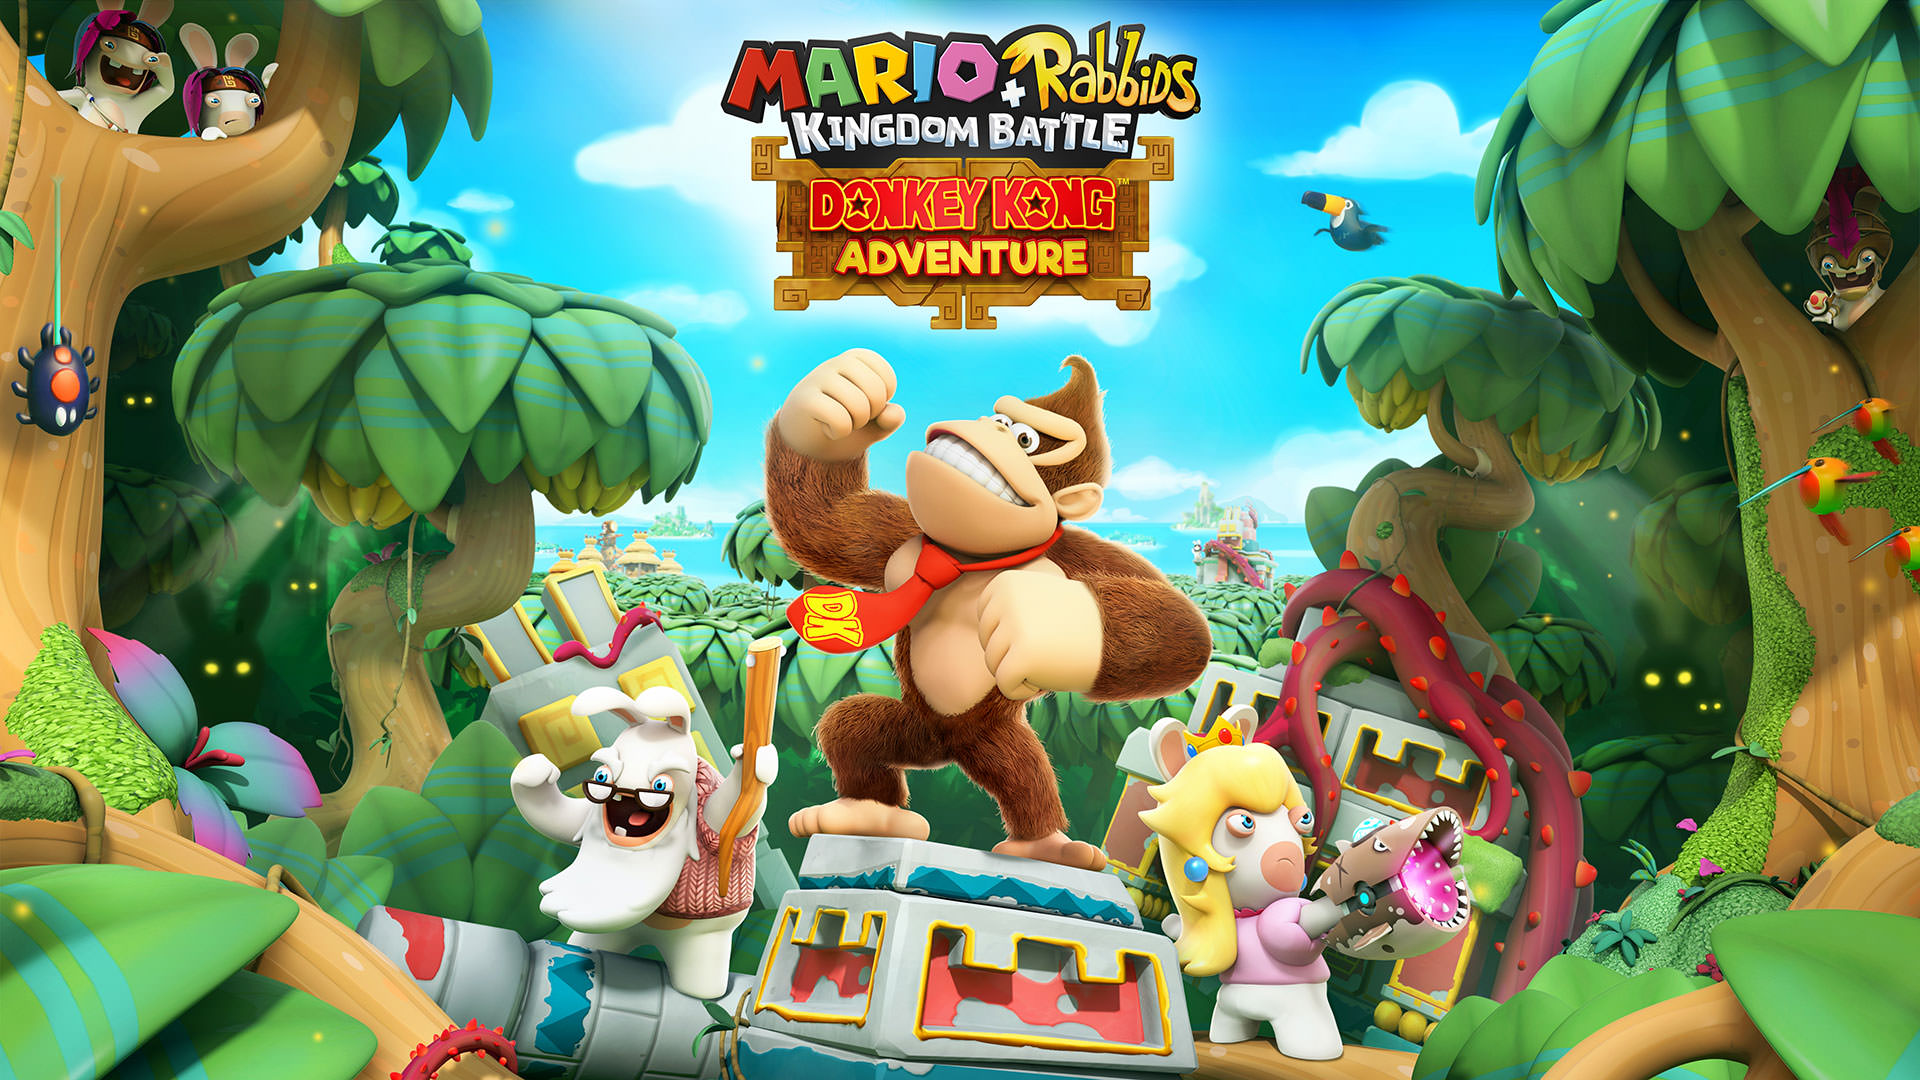 Donkey Kong to Feature in Mario + Rabbids Kingdom Battle DLC